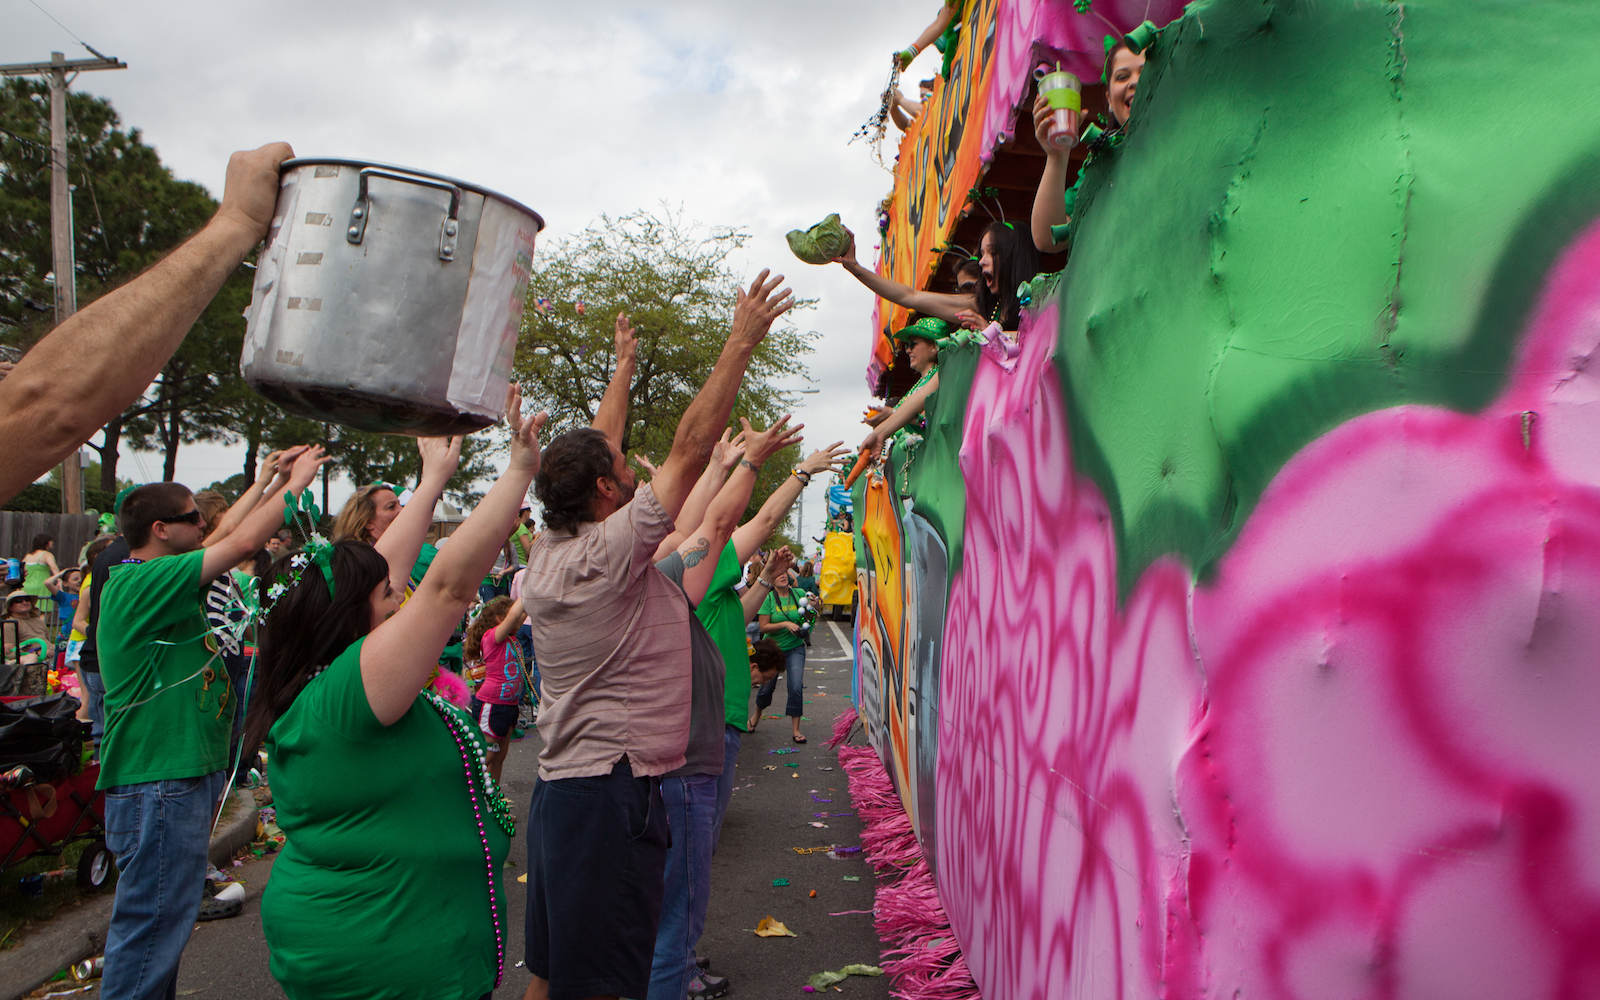 Celebrating St. Patrick's Day in New Orleans, Louisiana